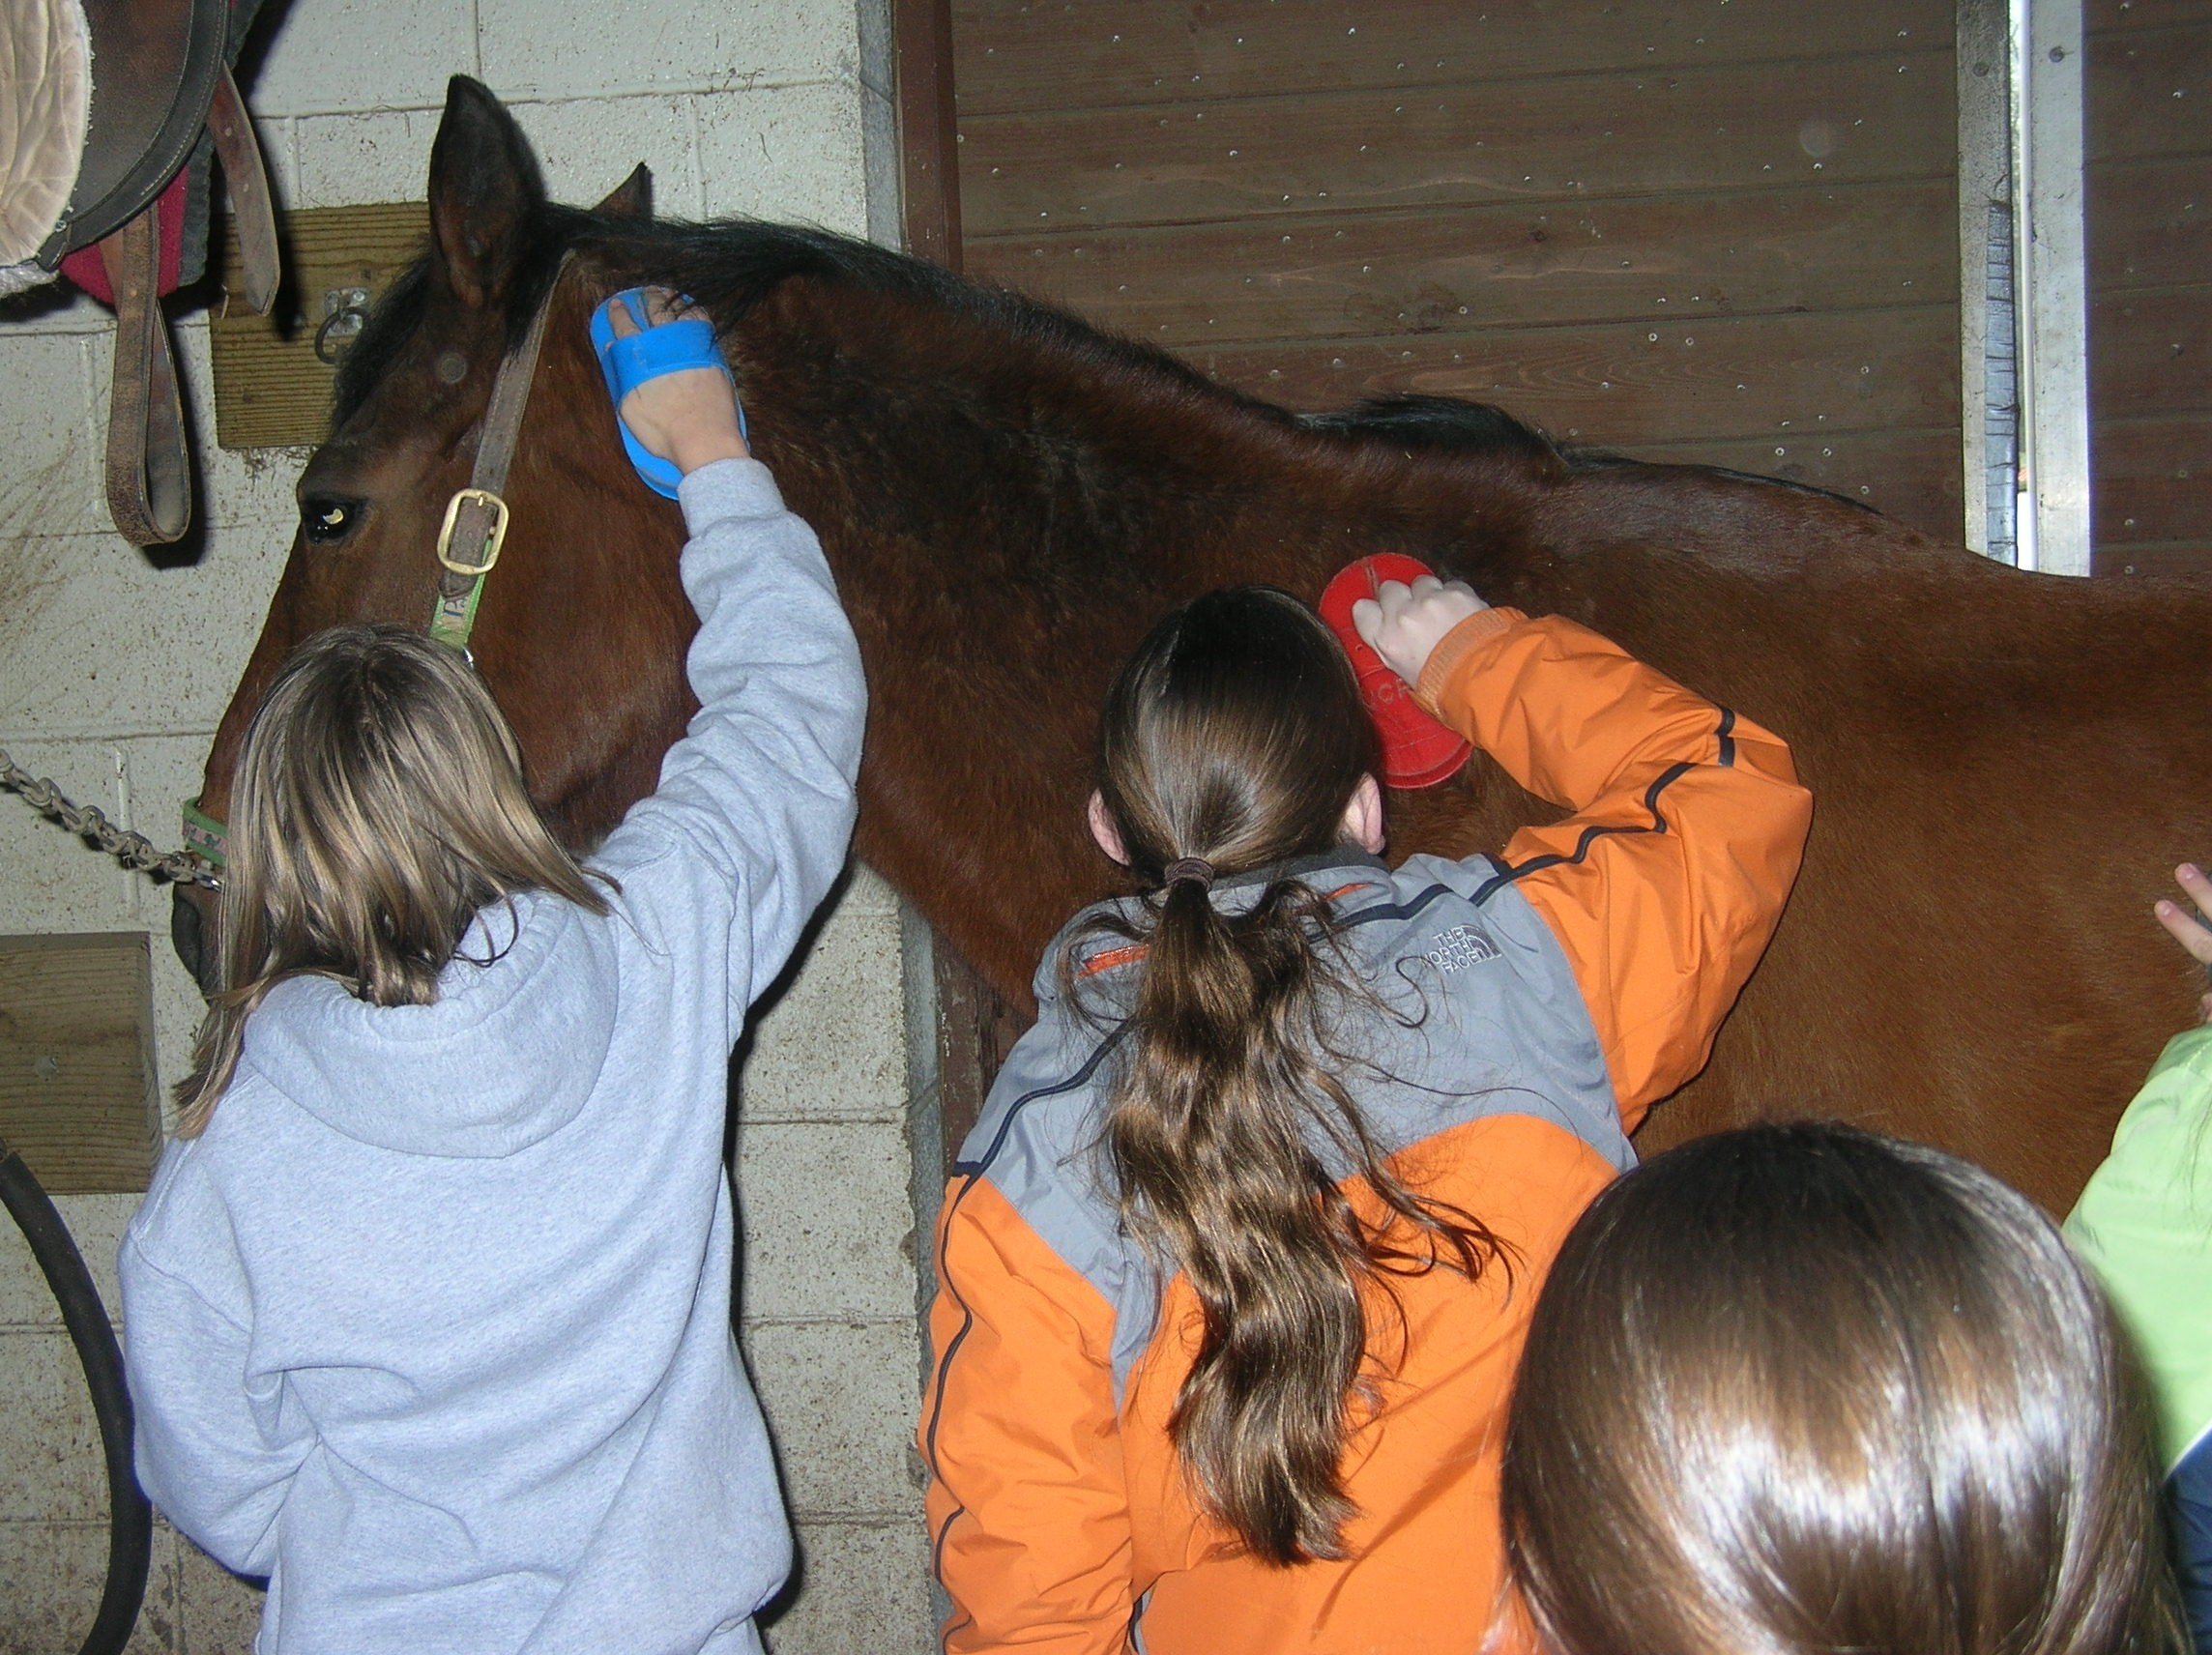 a11cefb03d244413ac48_Grooming_at_Watchung_Stable.jpg